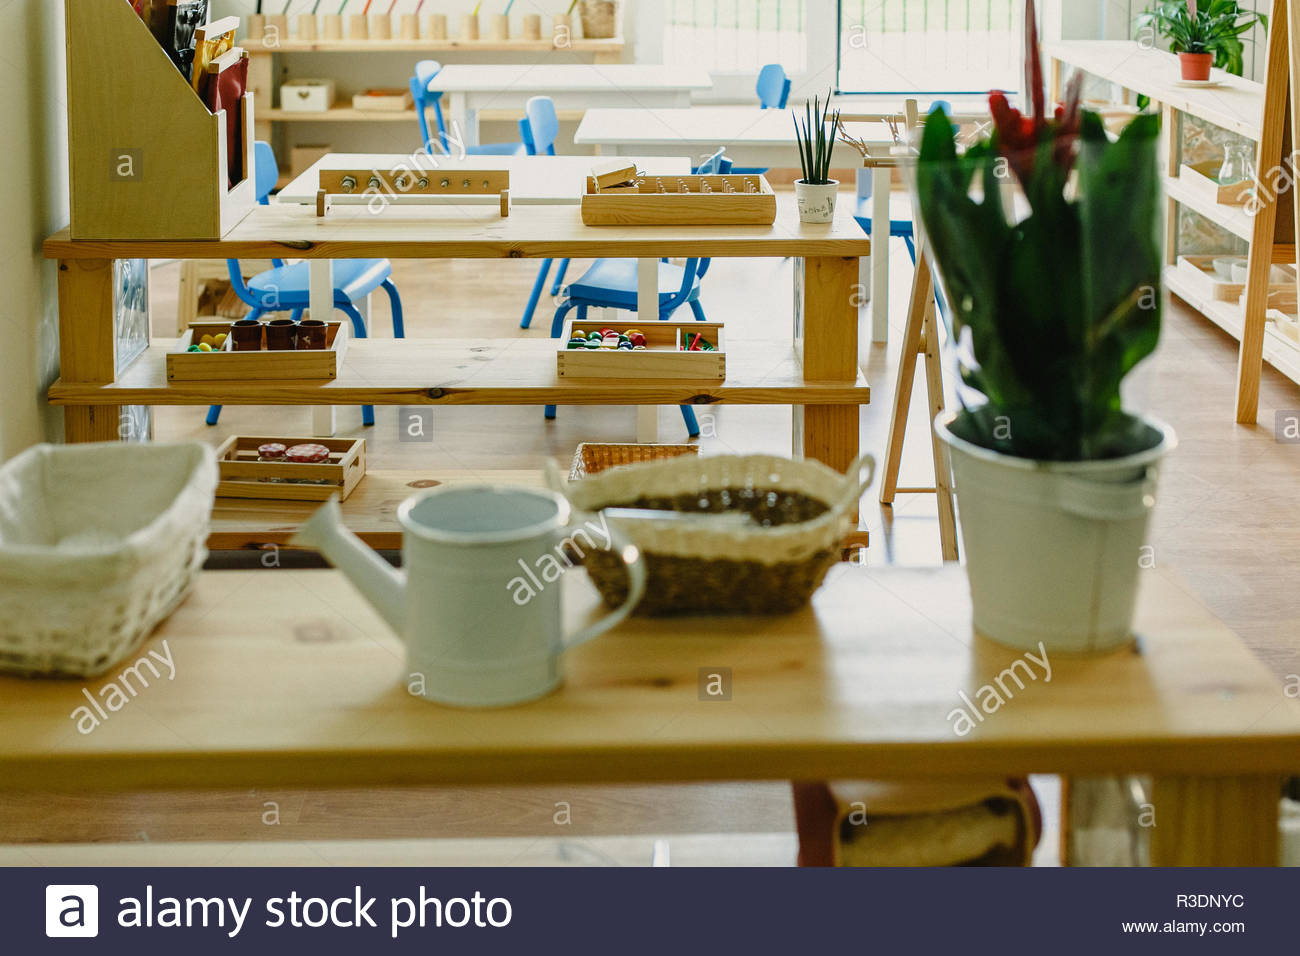 Learning materials in a montessori methodology school being manipulated by children - Stock Image